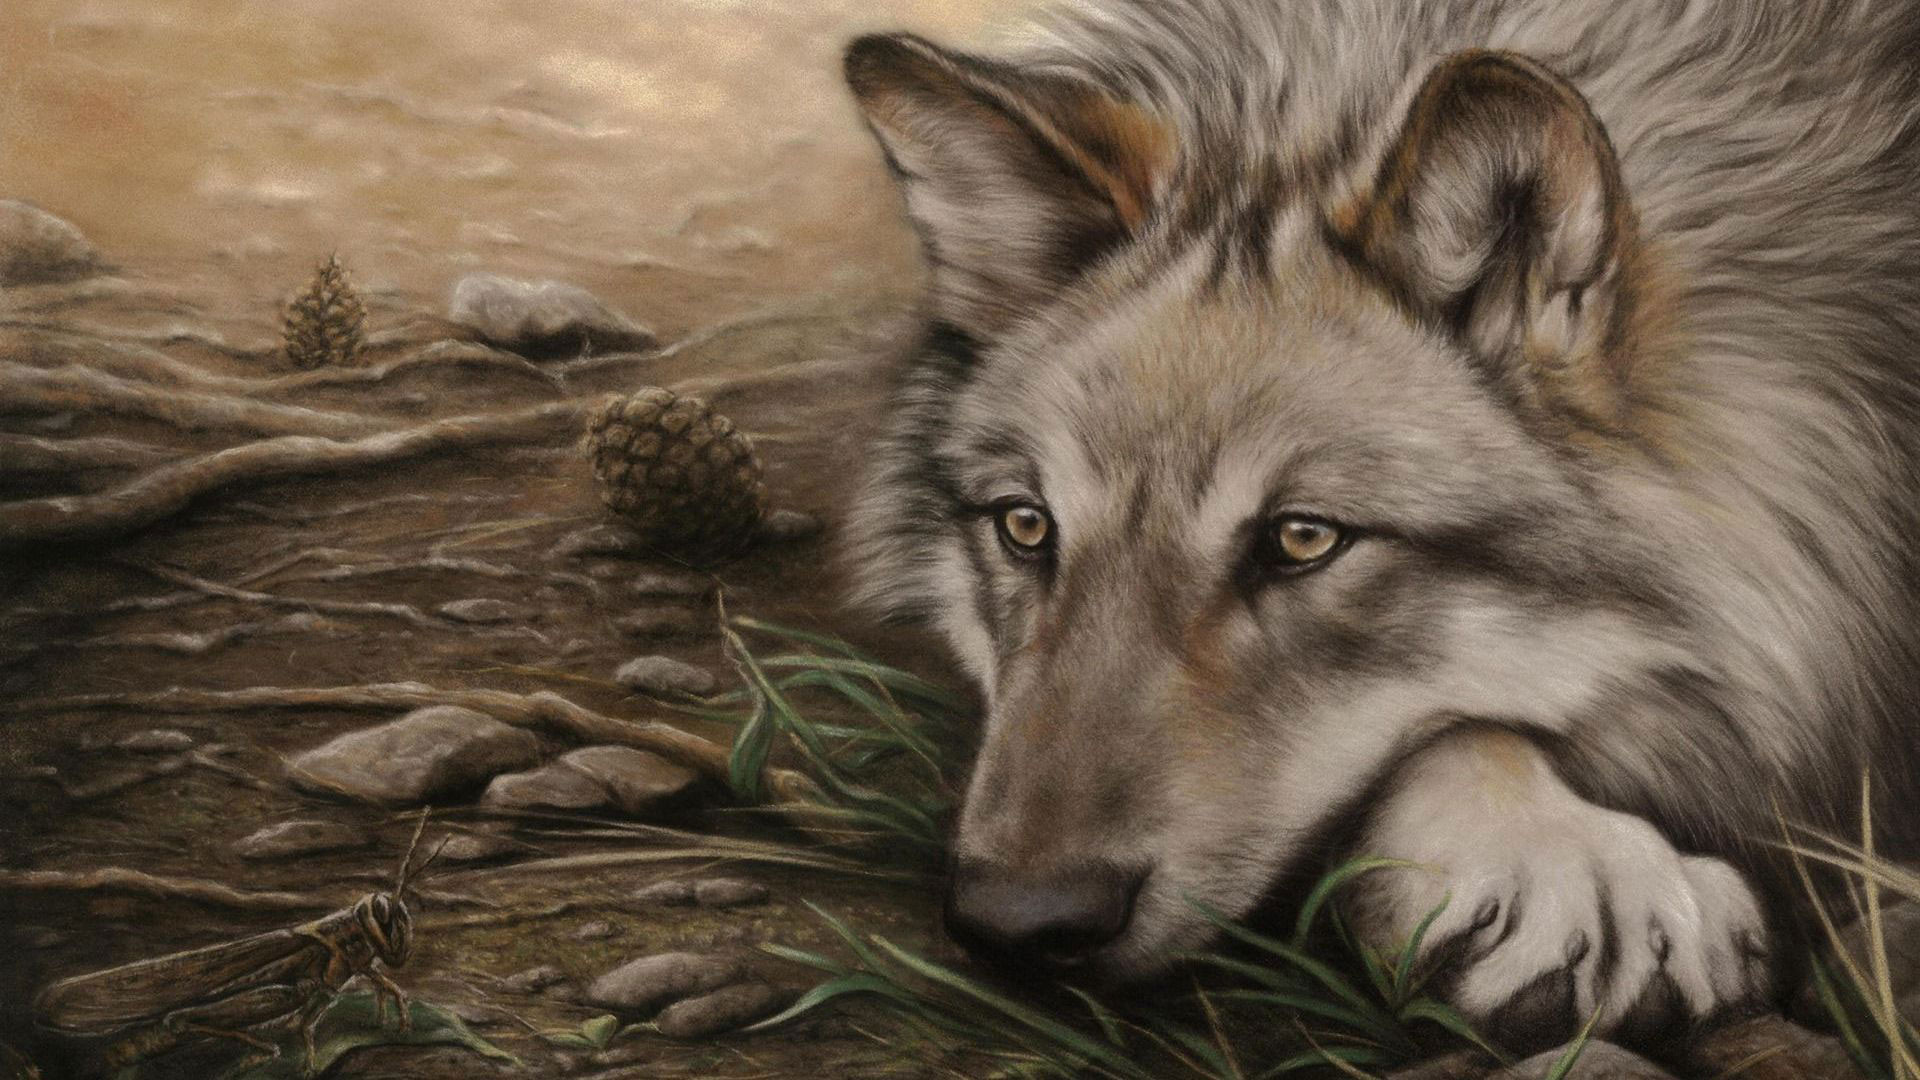 Res: 1920x1080, Wolf Drawing Wallpaper Attractive Animated Wolf Drawing Painting Hd Quality  Desktop